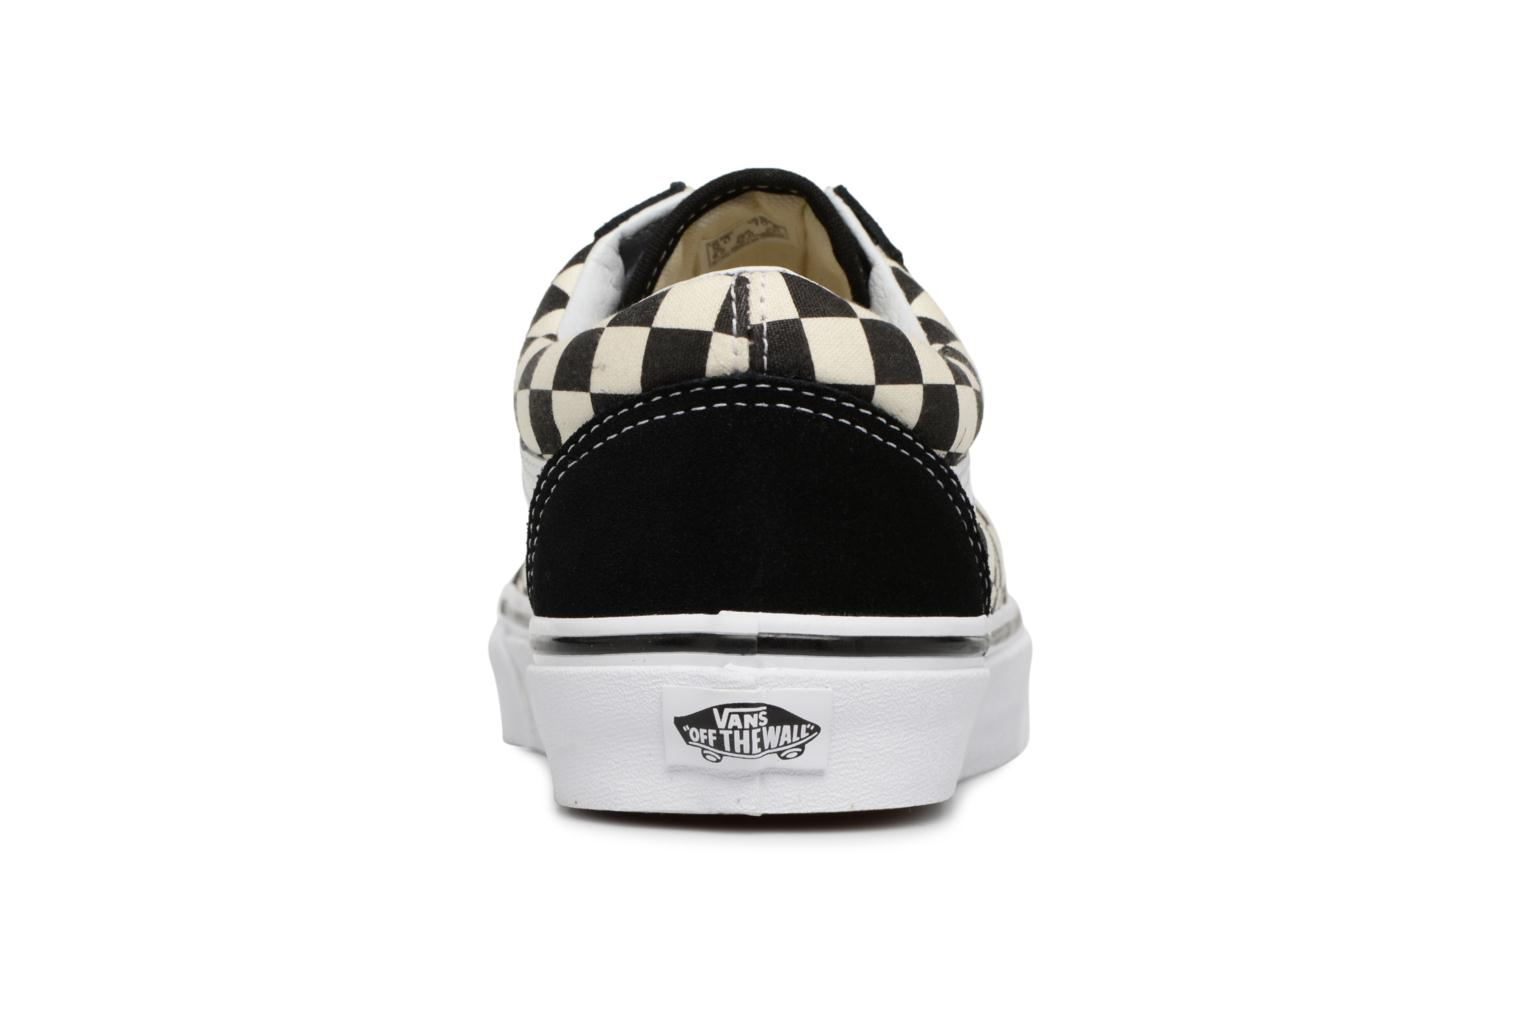 Vans White CheckBlack Old Skoolprimary CheckBlack Vans Skoolprimary White Vans Old Old ZiPkuOX